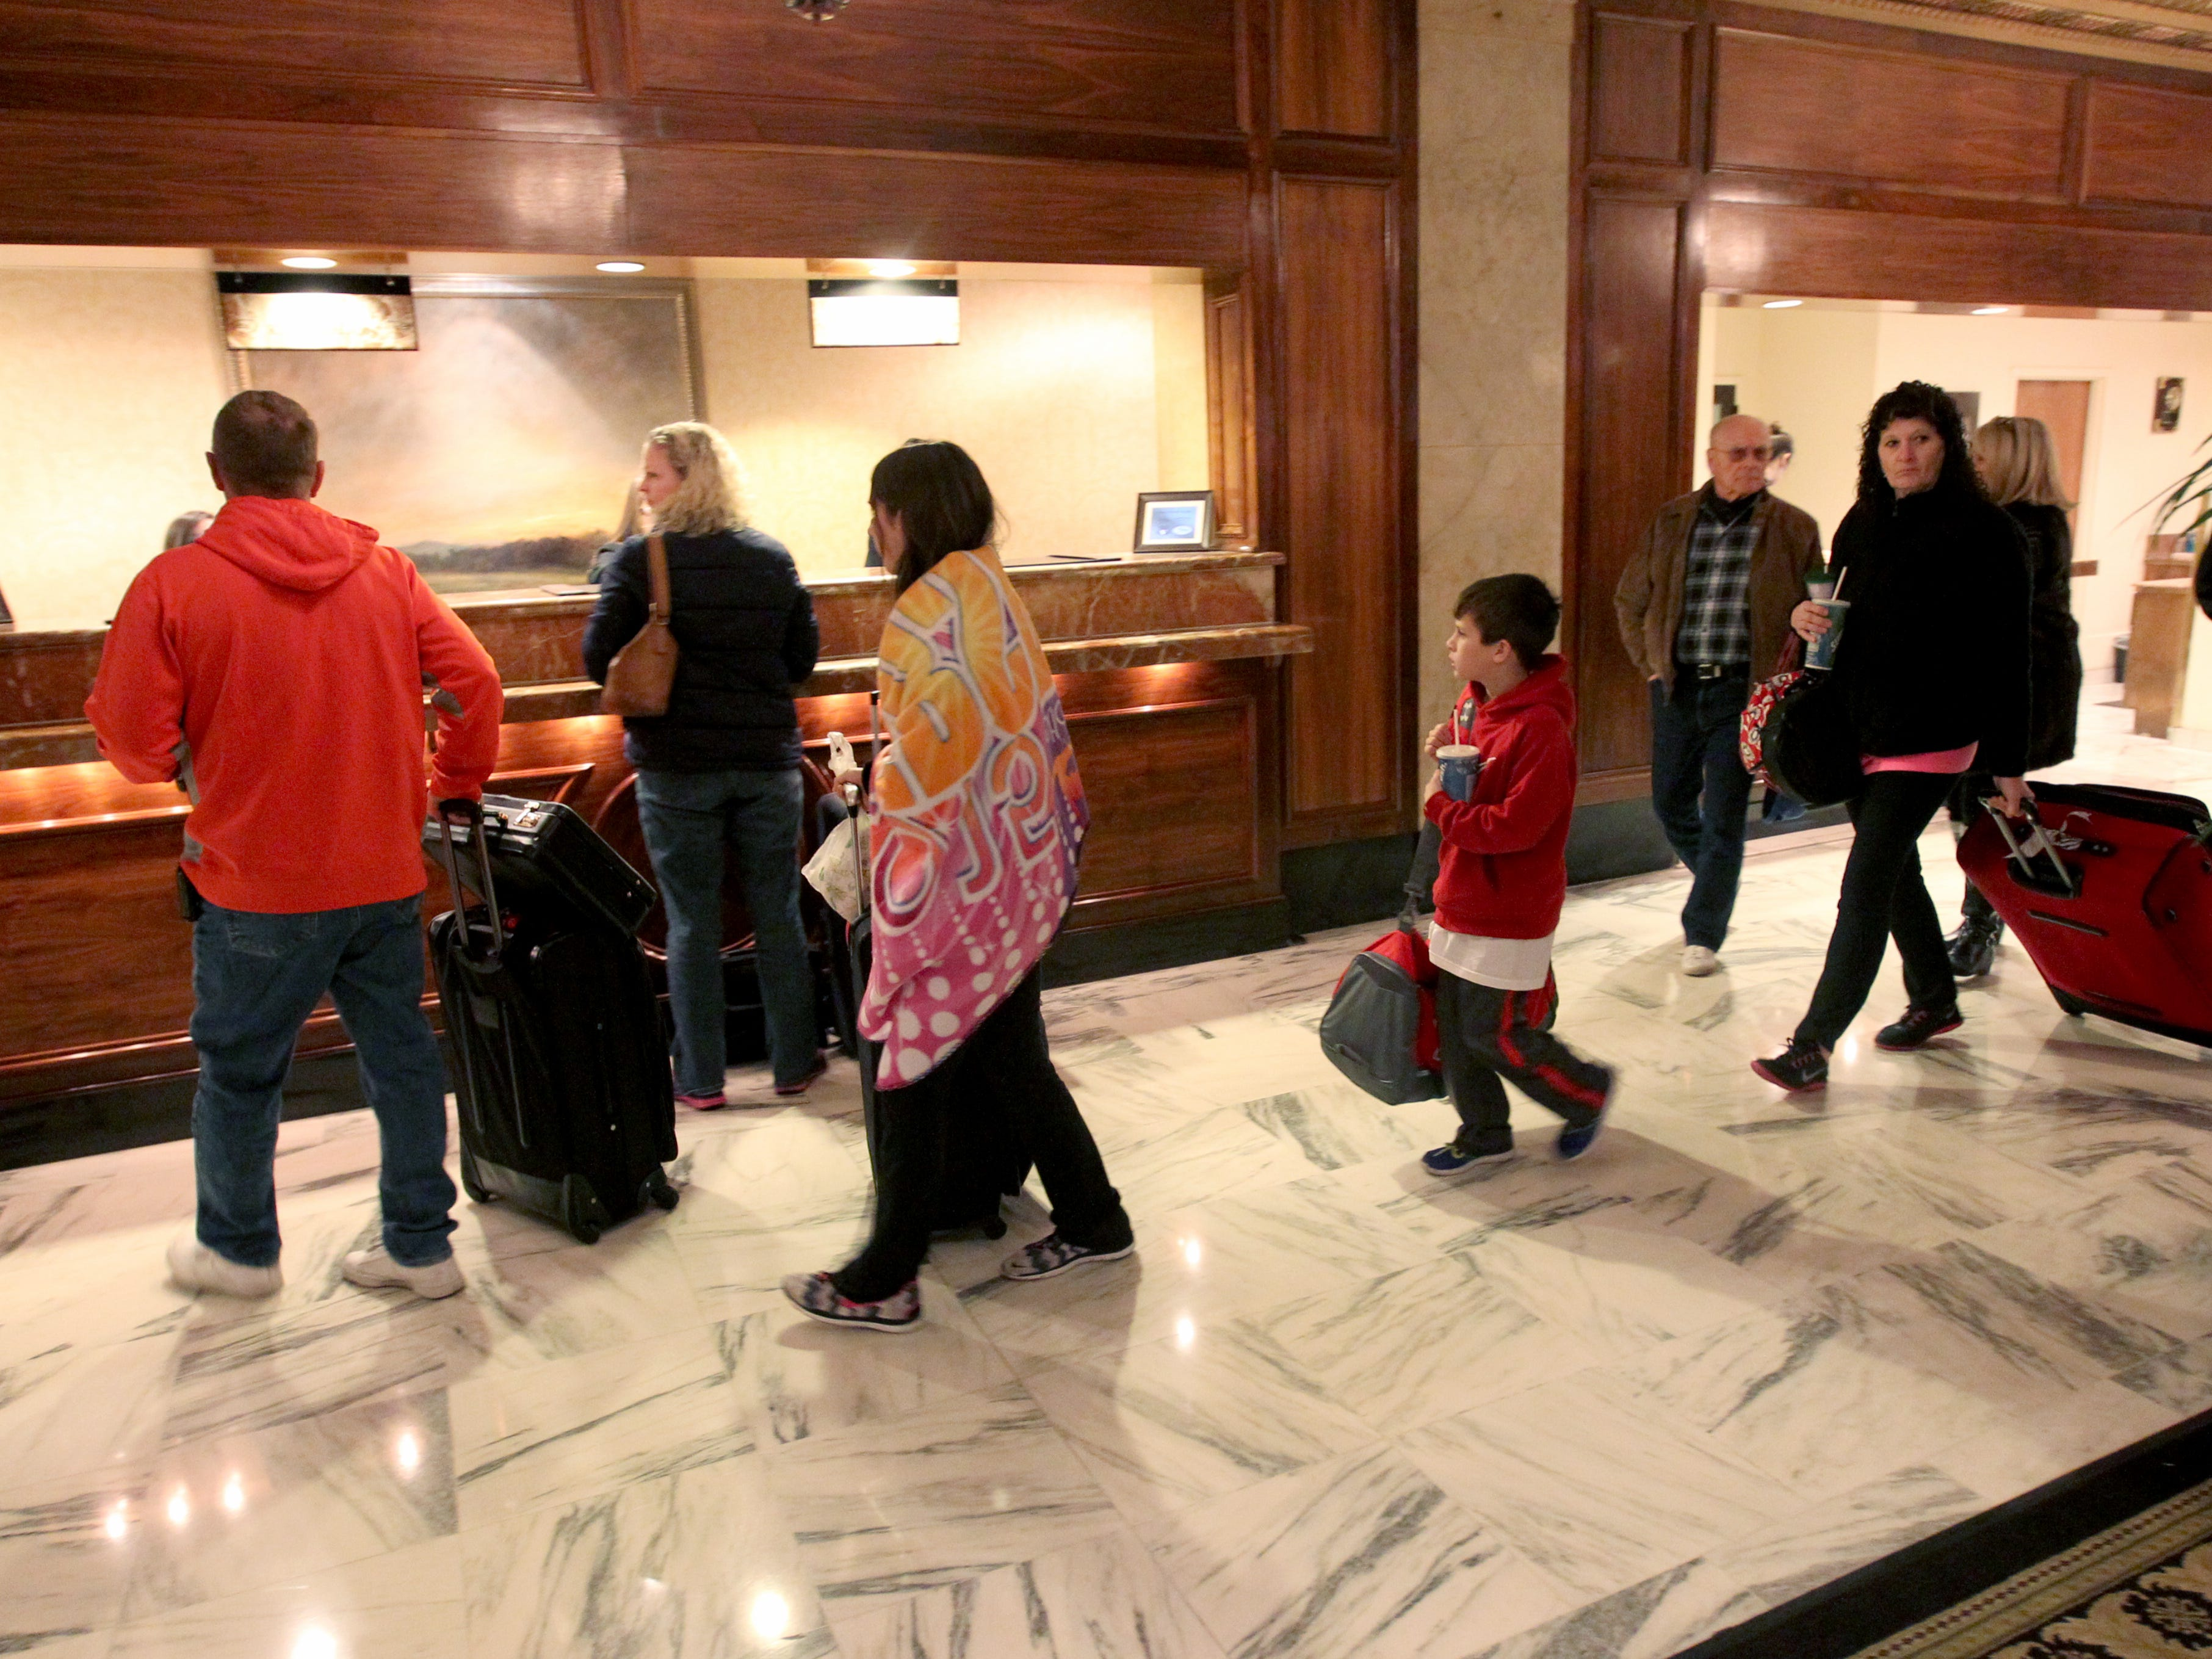 Hotel guests Barry Scroggins, left, his daughter Hannah Scroggins, 14, center, nephew Diego McCormick, 11, center right, and wife Lisa Scroggins, right, check in to the registration counter at the Peabody Hotel on Feb. 16, 2015. Memphis area hotels had the highest occupancy rate in more the 25 years in 2014.